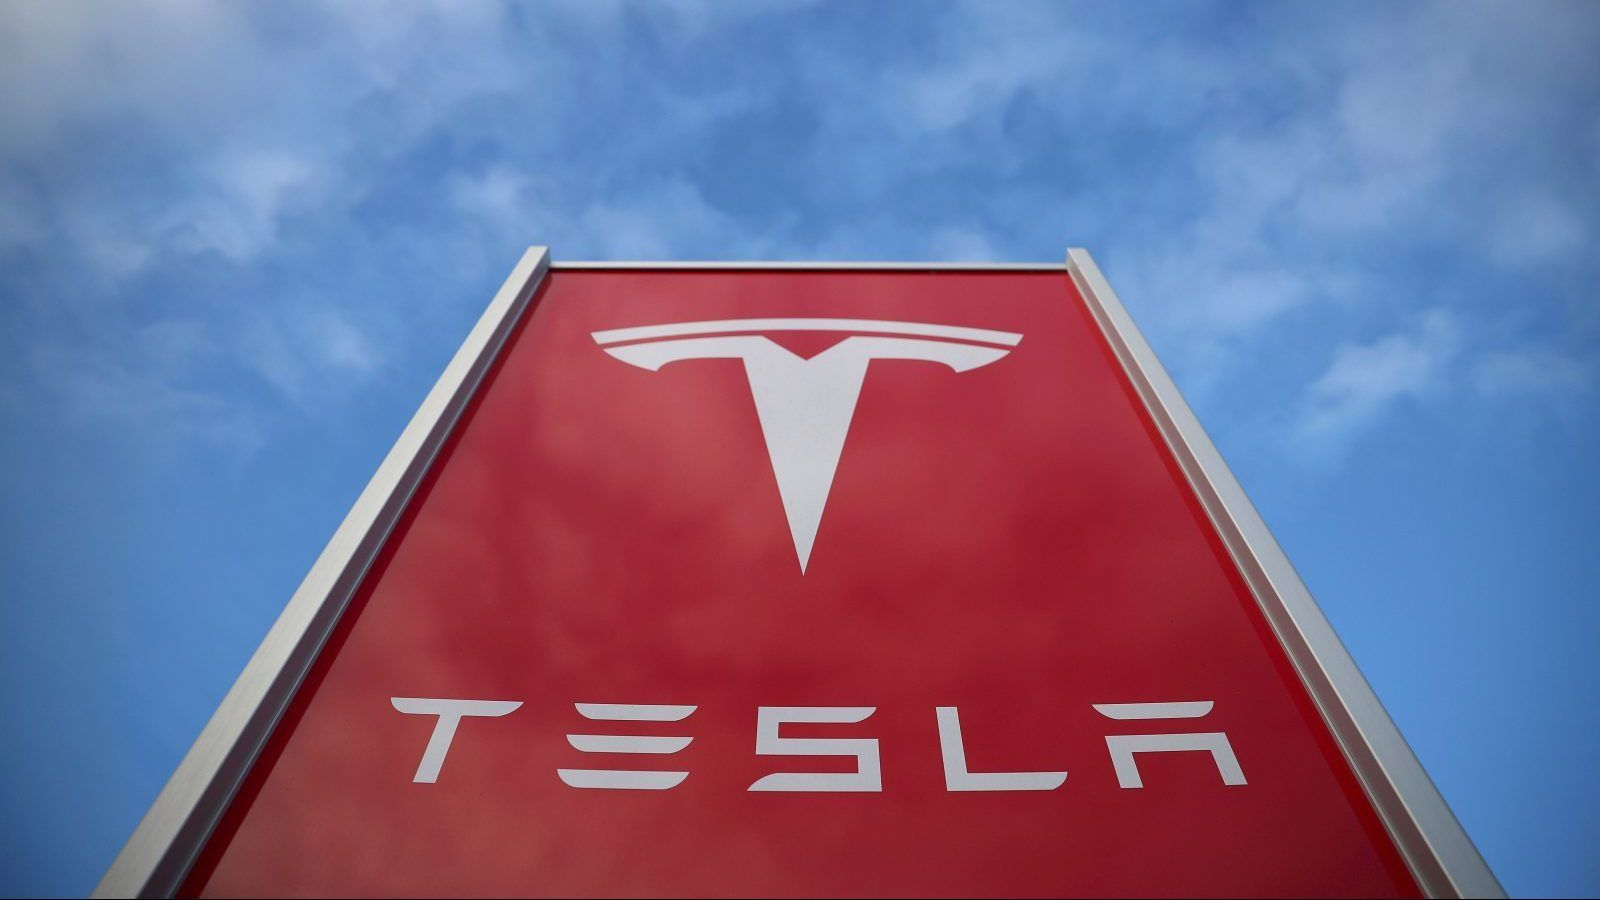 Tesla to lay off 9% of workers as part of restructuring plan